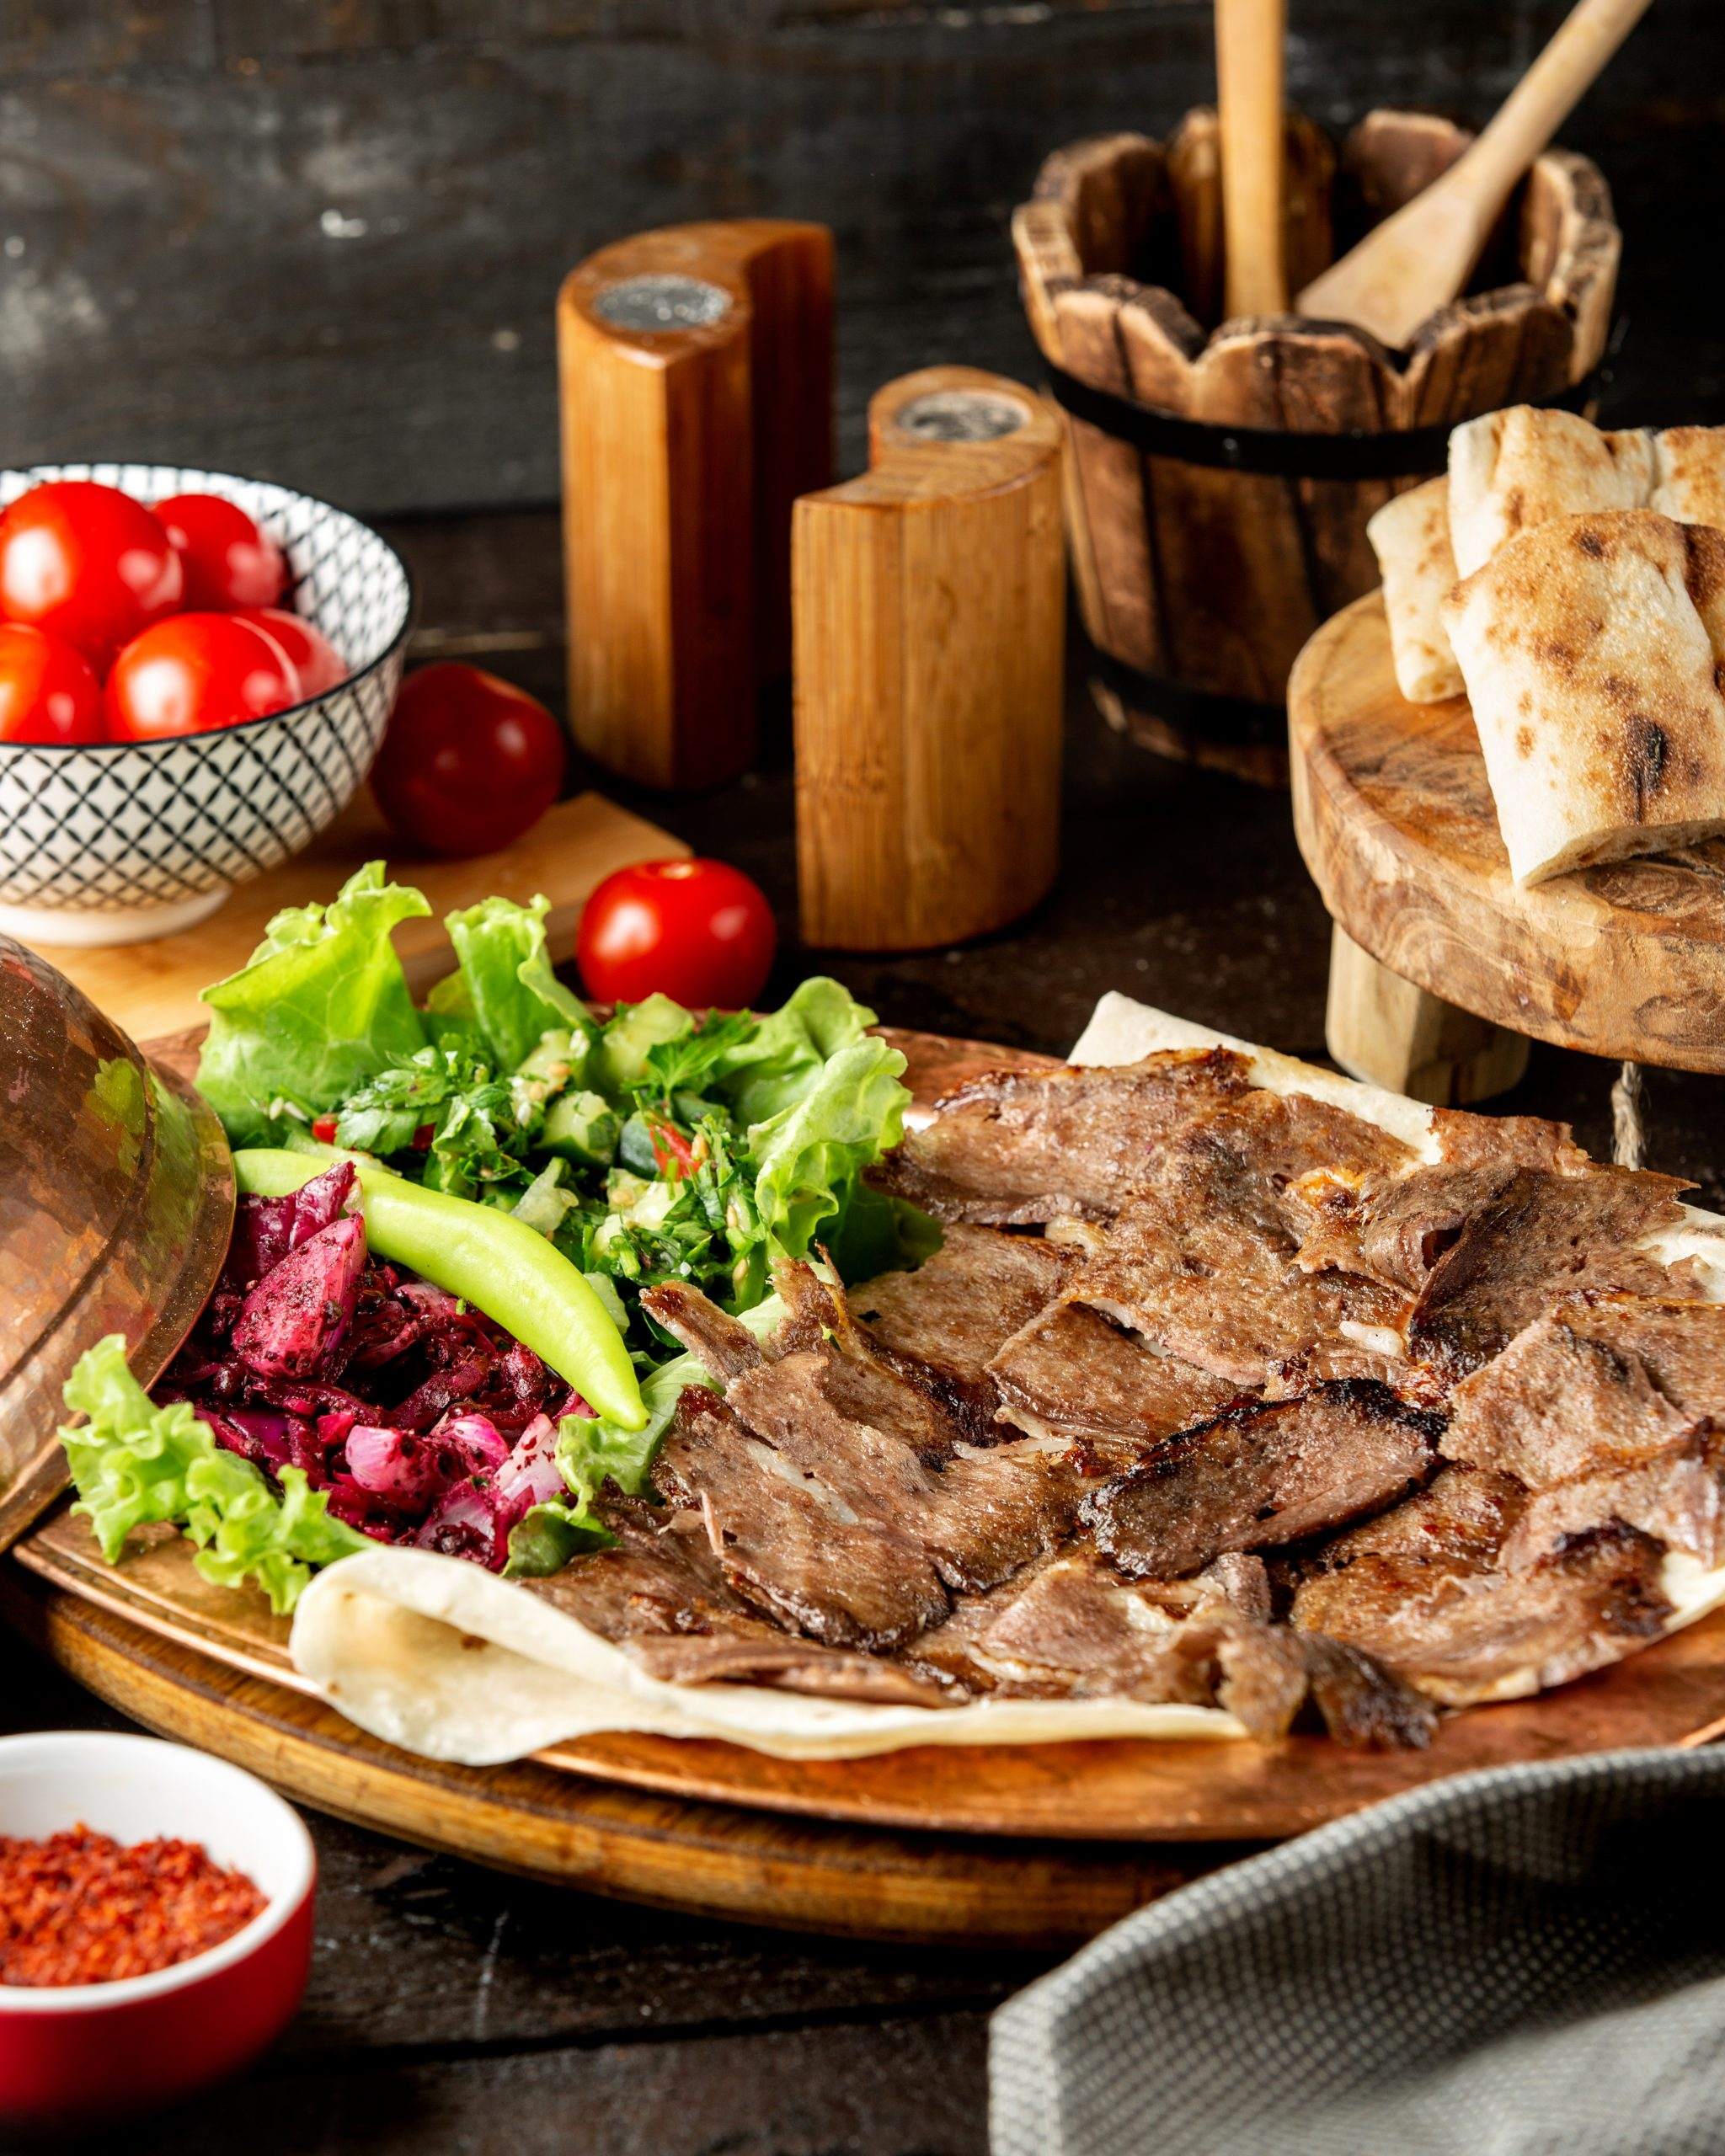 lamb doner slices served with vegetable salad and flatbread